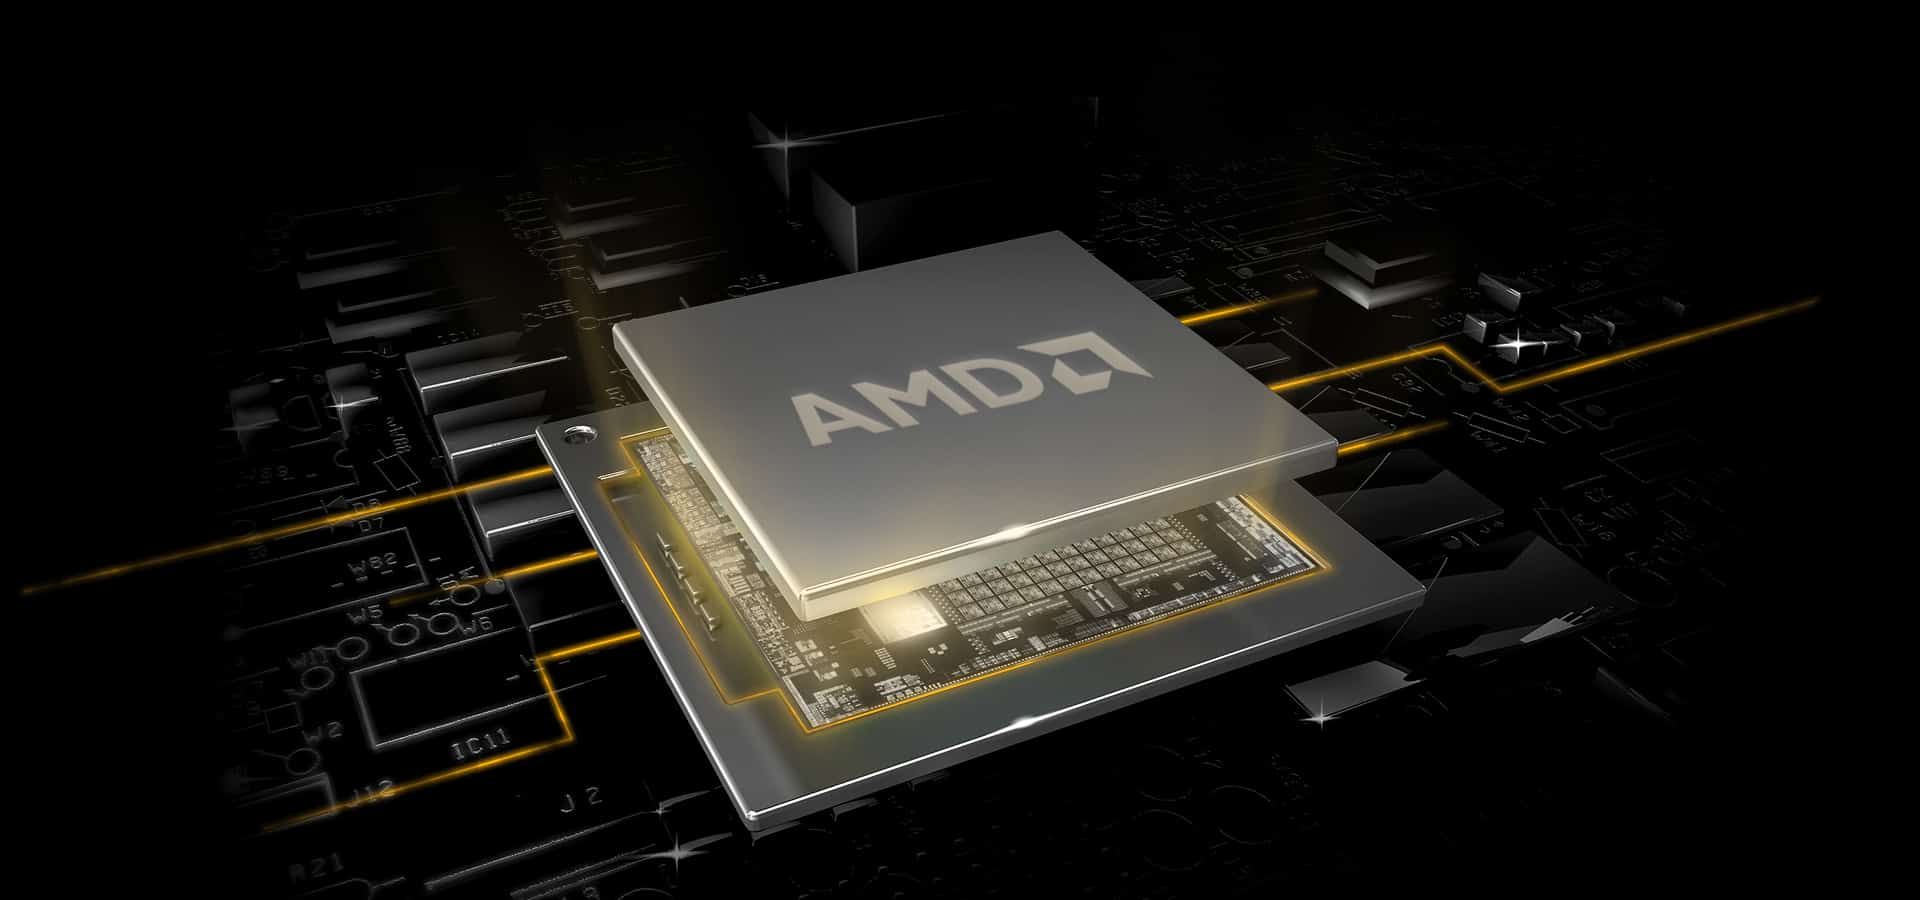 5 Nm Based Amd Zen 4 Cpus Advanced Node Rdna 3 Gpus To Launch By 2021 Technosports